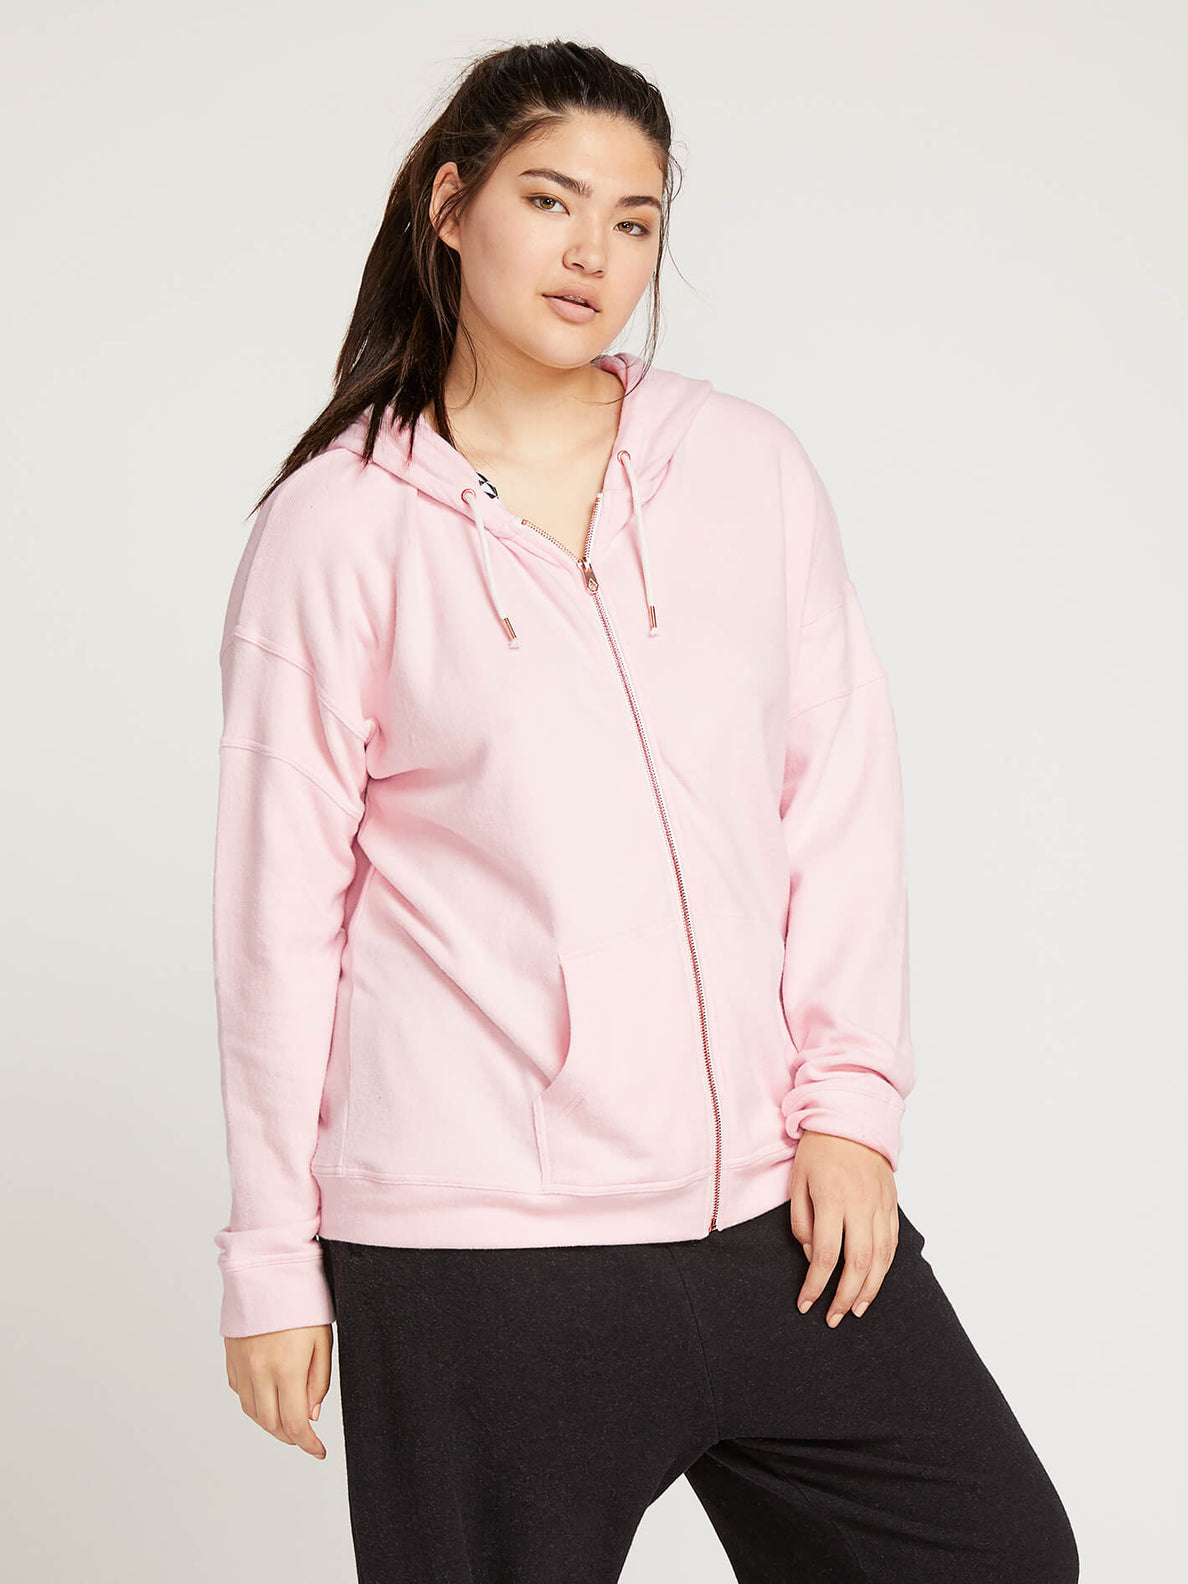 Lived In Lounge Zip Hoodie In Blush Pink, Front Extended Size View